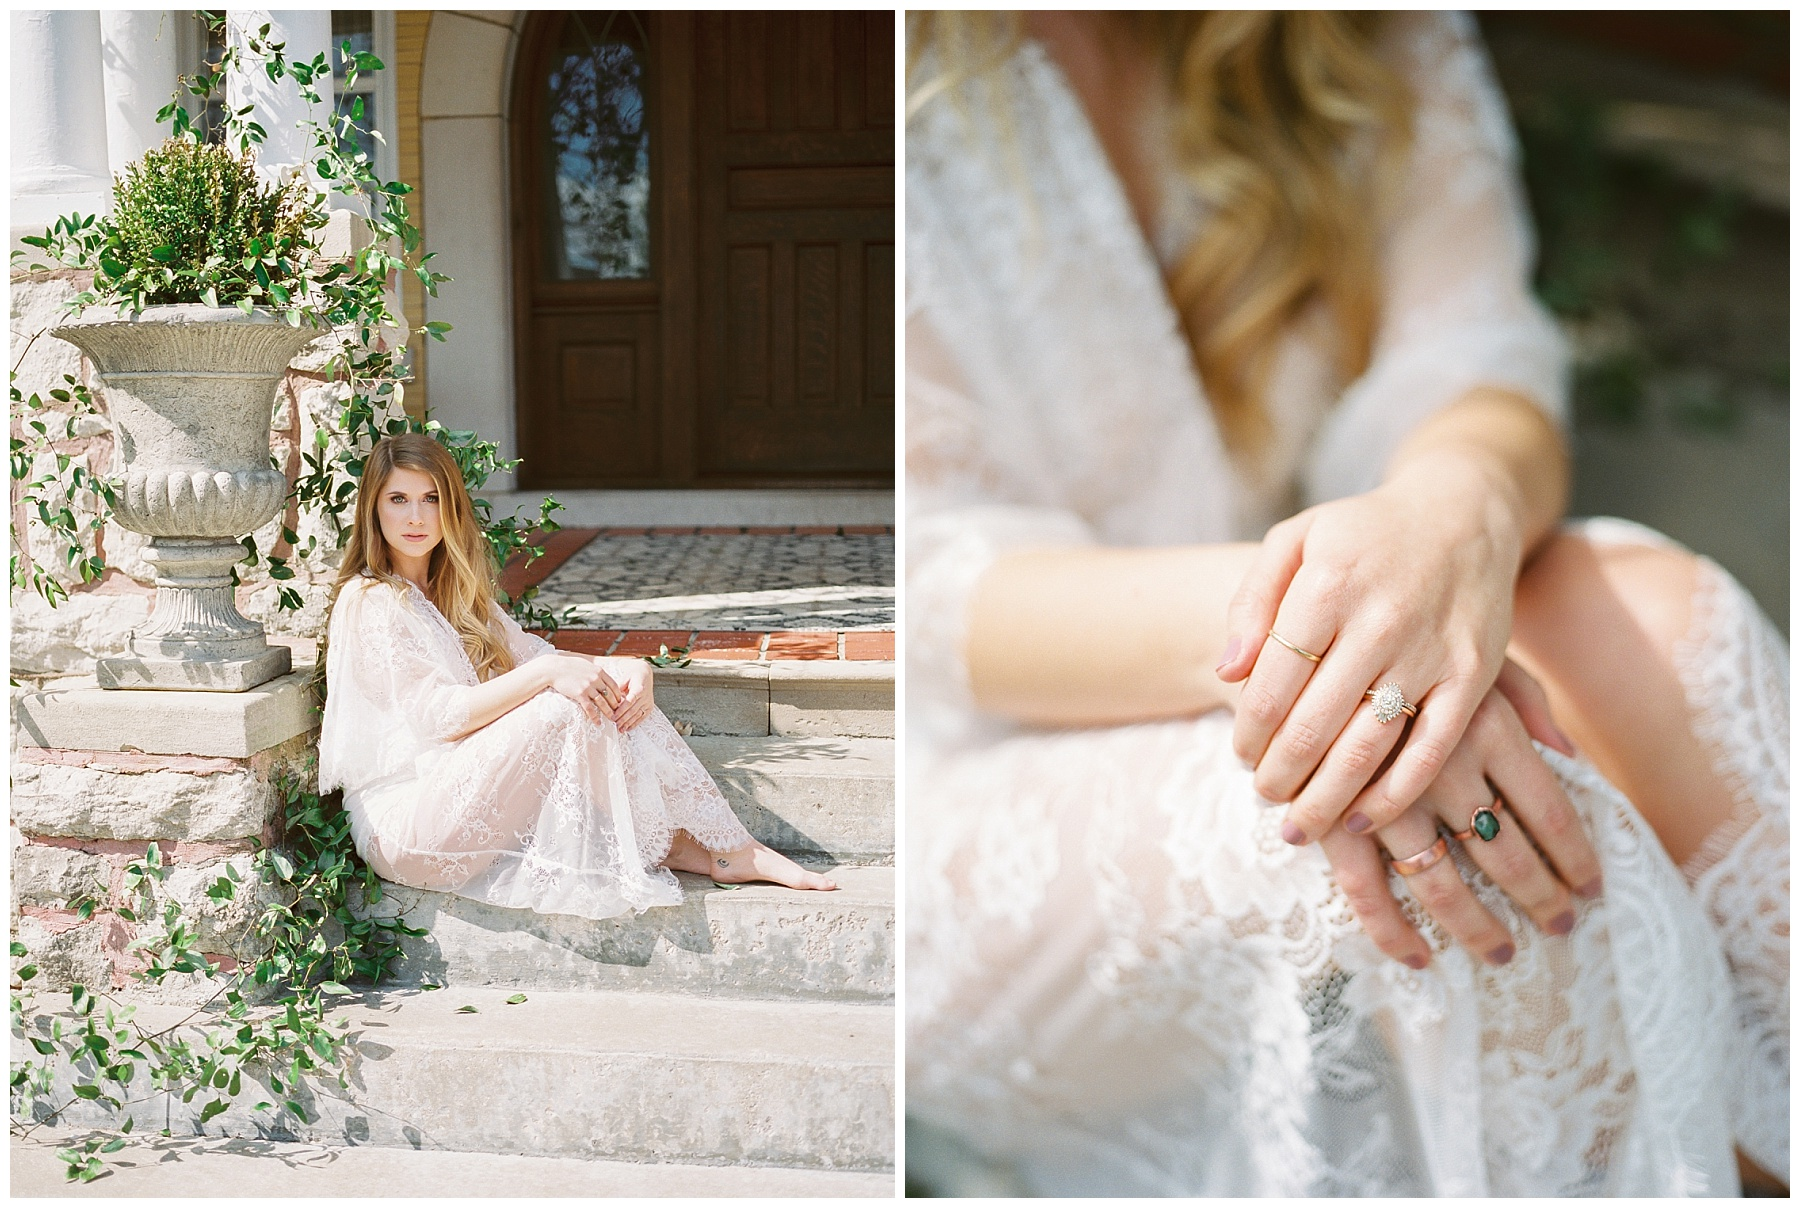 Natural, Intimate, and Organic Bridal Session on Steps of Century Old Bed and Breakfast by Kelsi Kliethermes Photography Best Missouri and Maui Wedding Photographer_0005.jpg